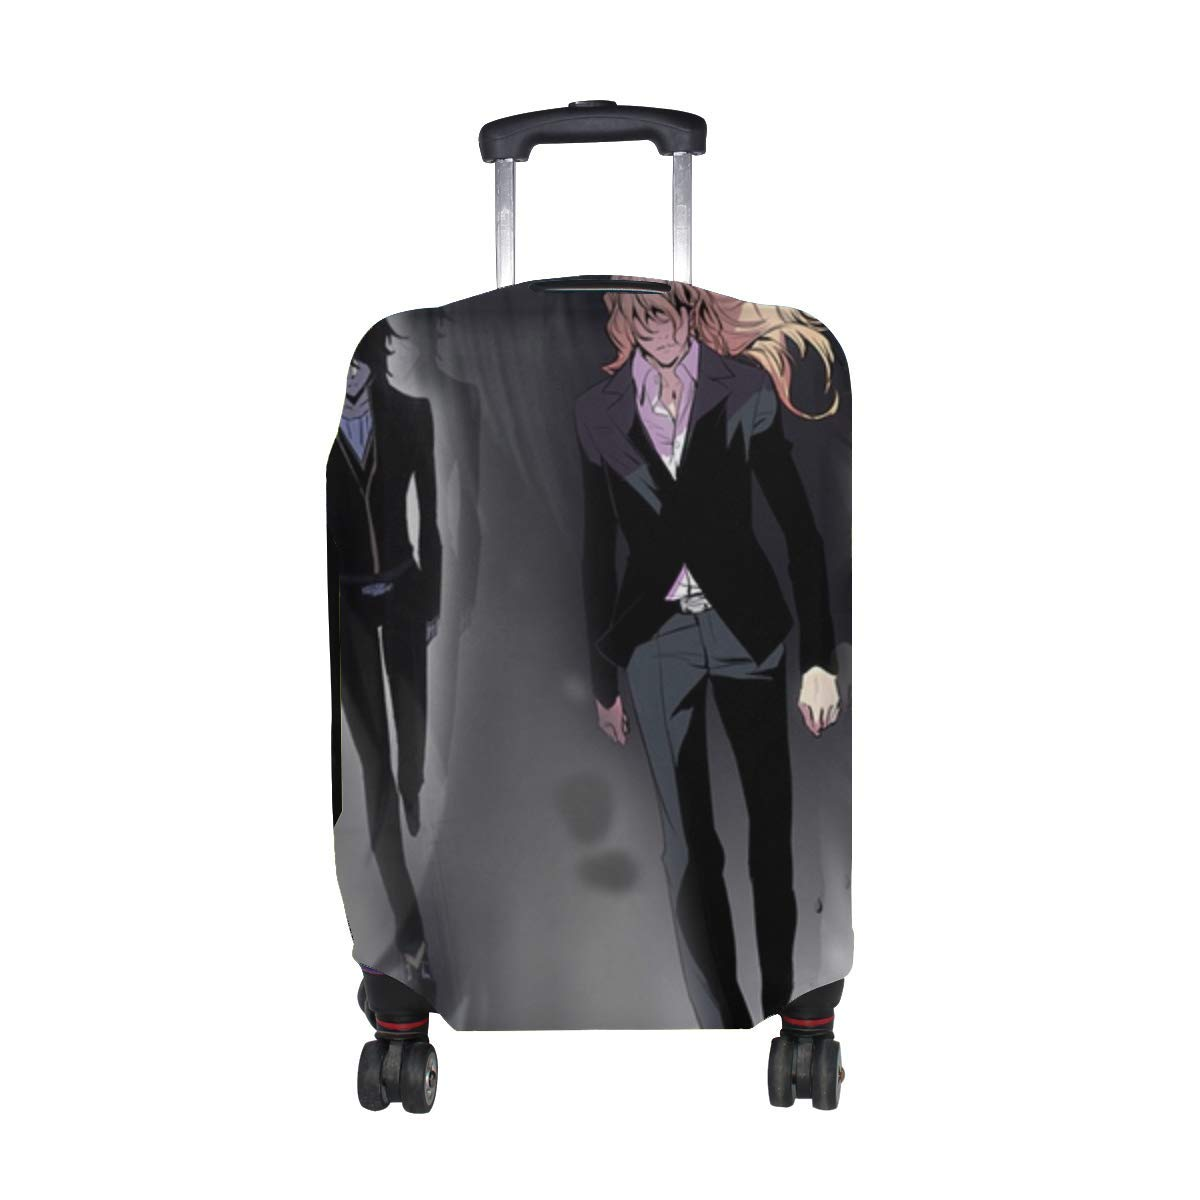 Maxm Cadis Etrama Di Raizel Frankenstein Long Hair Pattern Print Travel Luggage Protector Baggage Suitcase Cover Fits 18-21 Inch Luggage